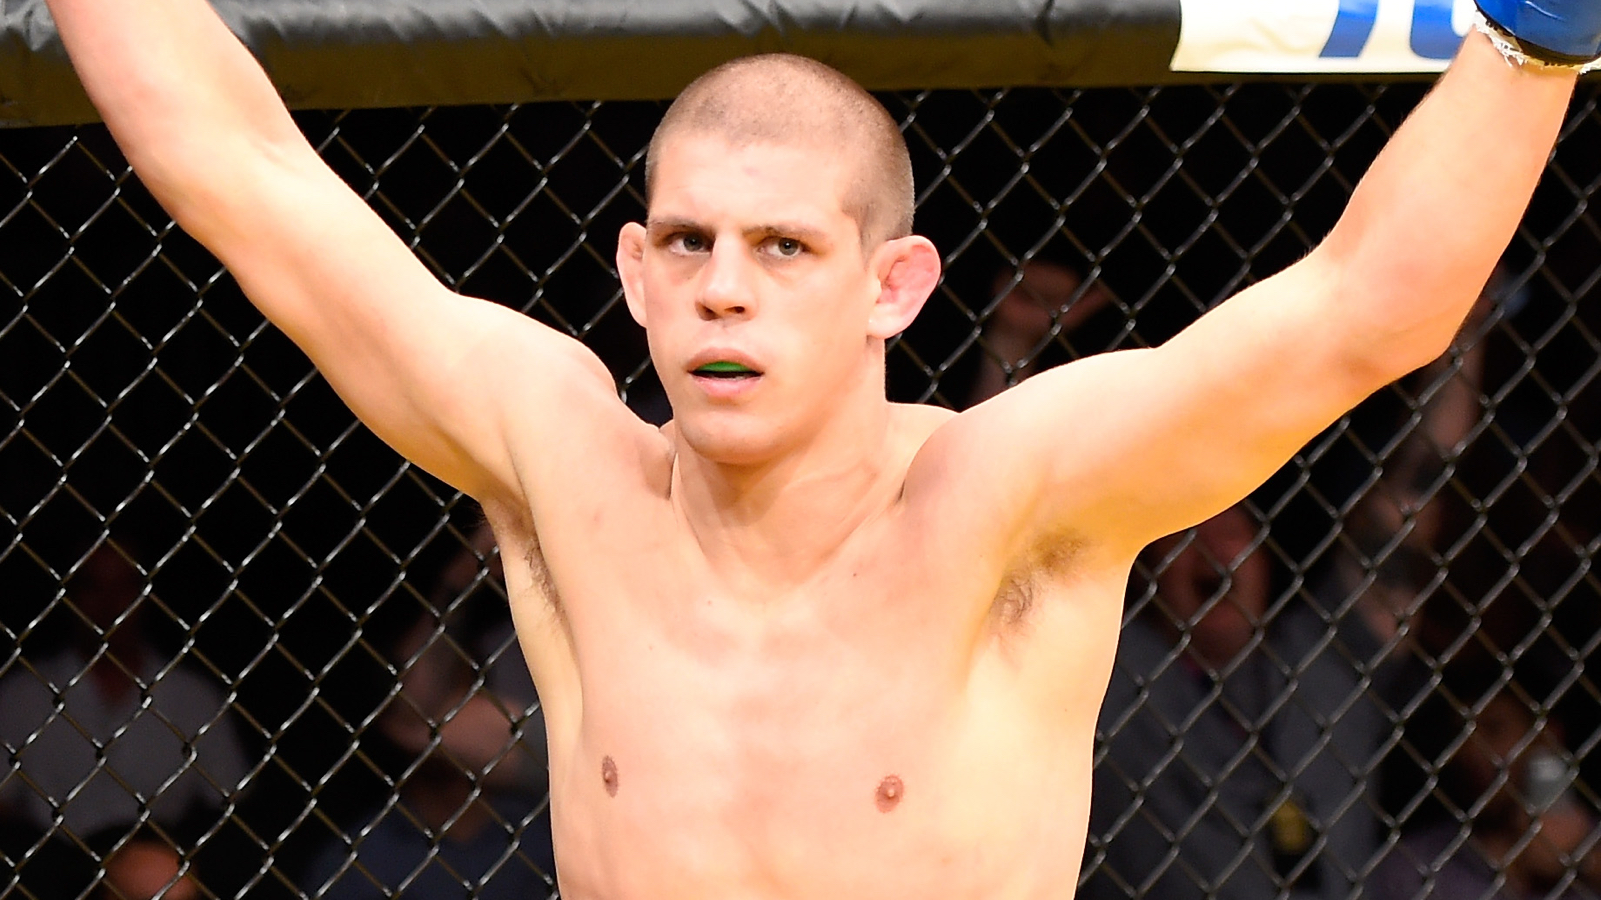 LAS VEGAS, NV - JULY 09: Joe Lauzon reacts to his victory over Diego Sanchez in their lightweight bout during the UFC 200 event on July 9, 2016 at T-Mobile Arena in Las Vegas, Nevada.  (Photo by Josh Hedges/Zuffa LLC/Zuffa LLC via Getty Images)